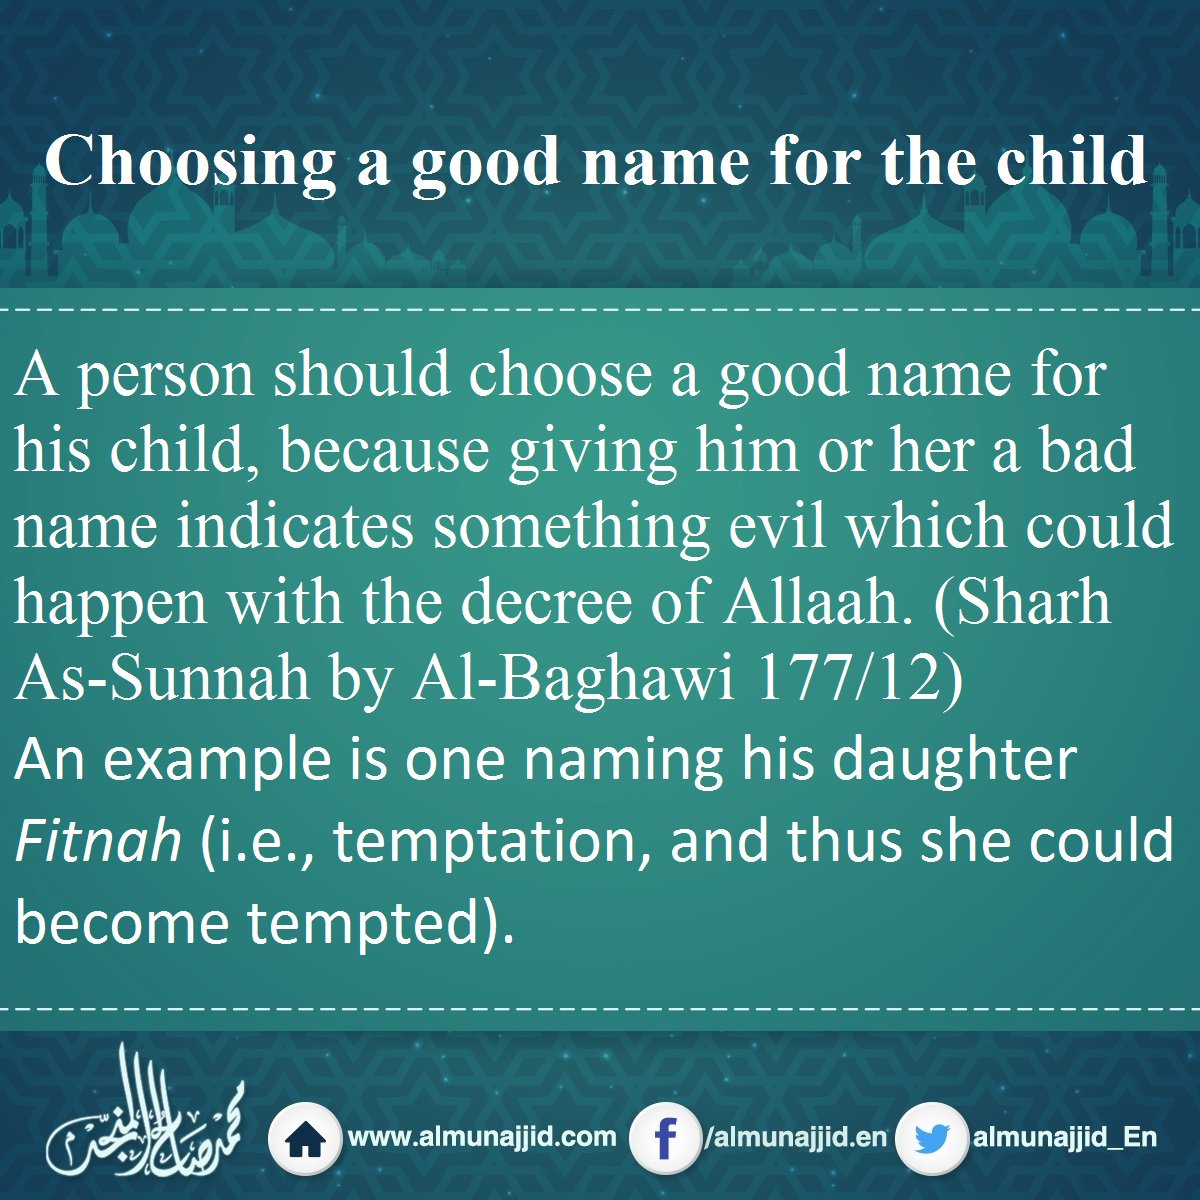 Choosing a good name for the child #name #naming #child<br>http://pic.twitter.com/m7SLo7ZeO4